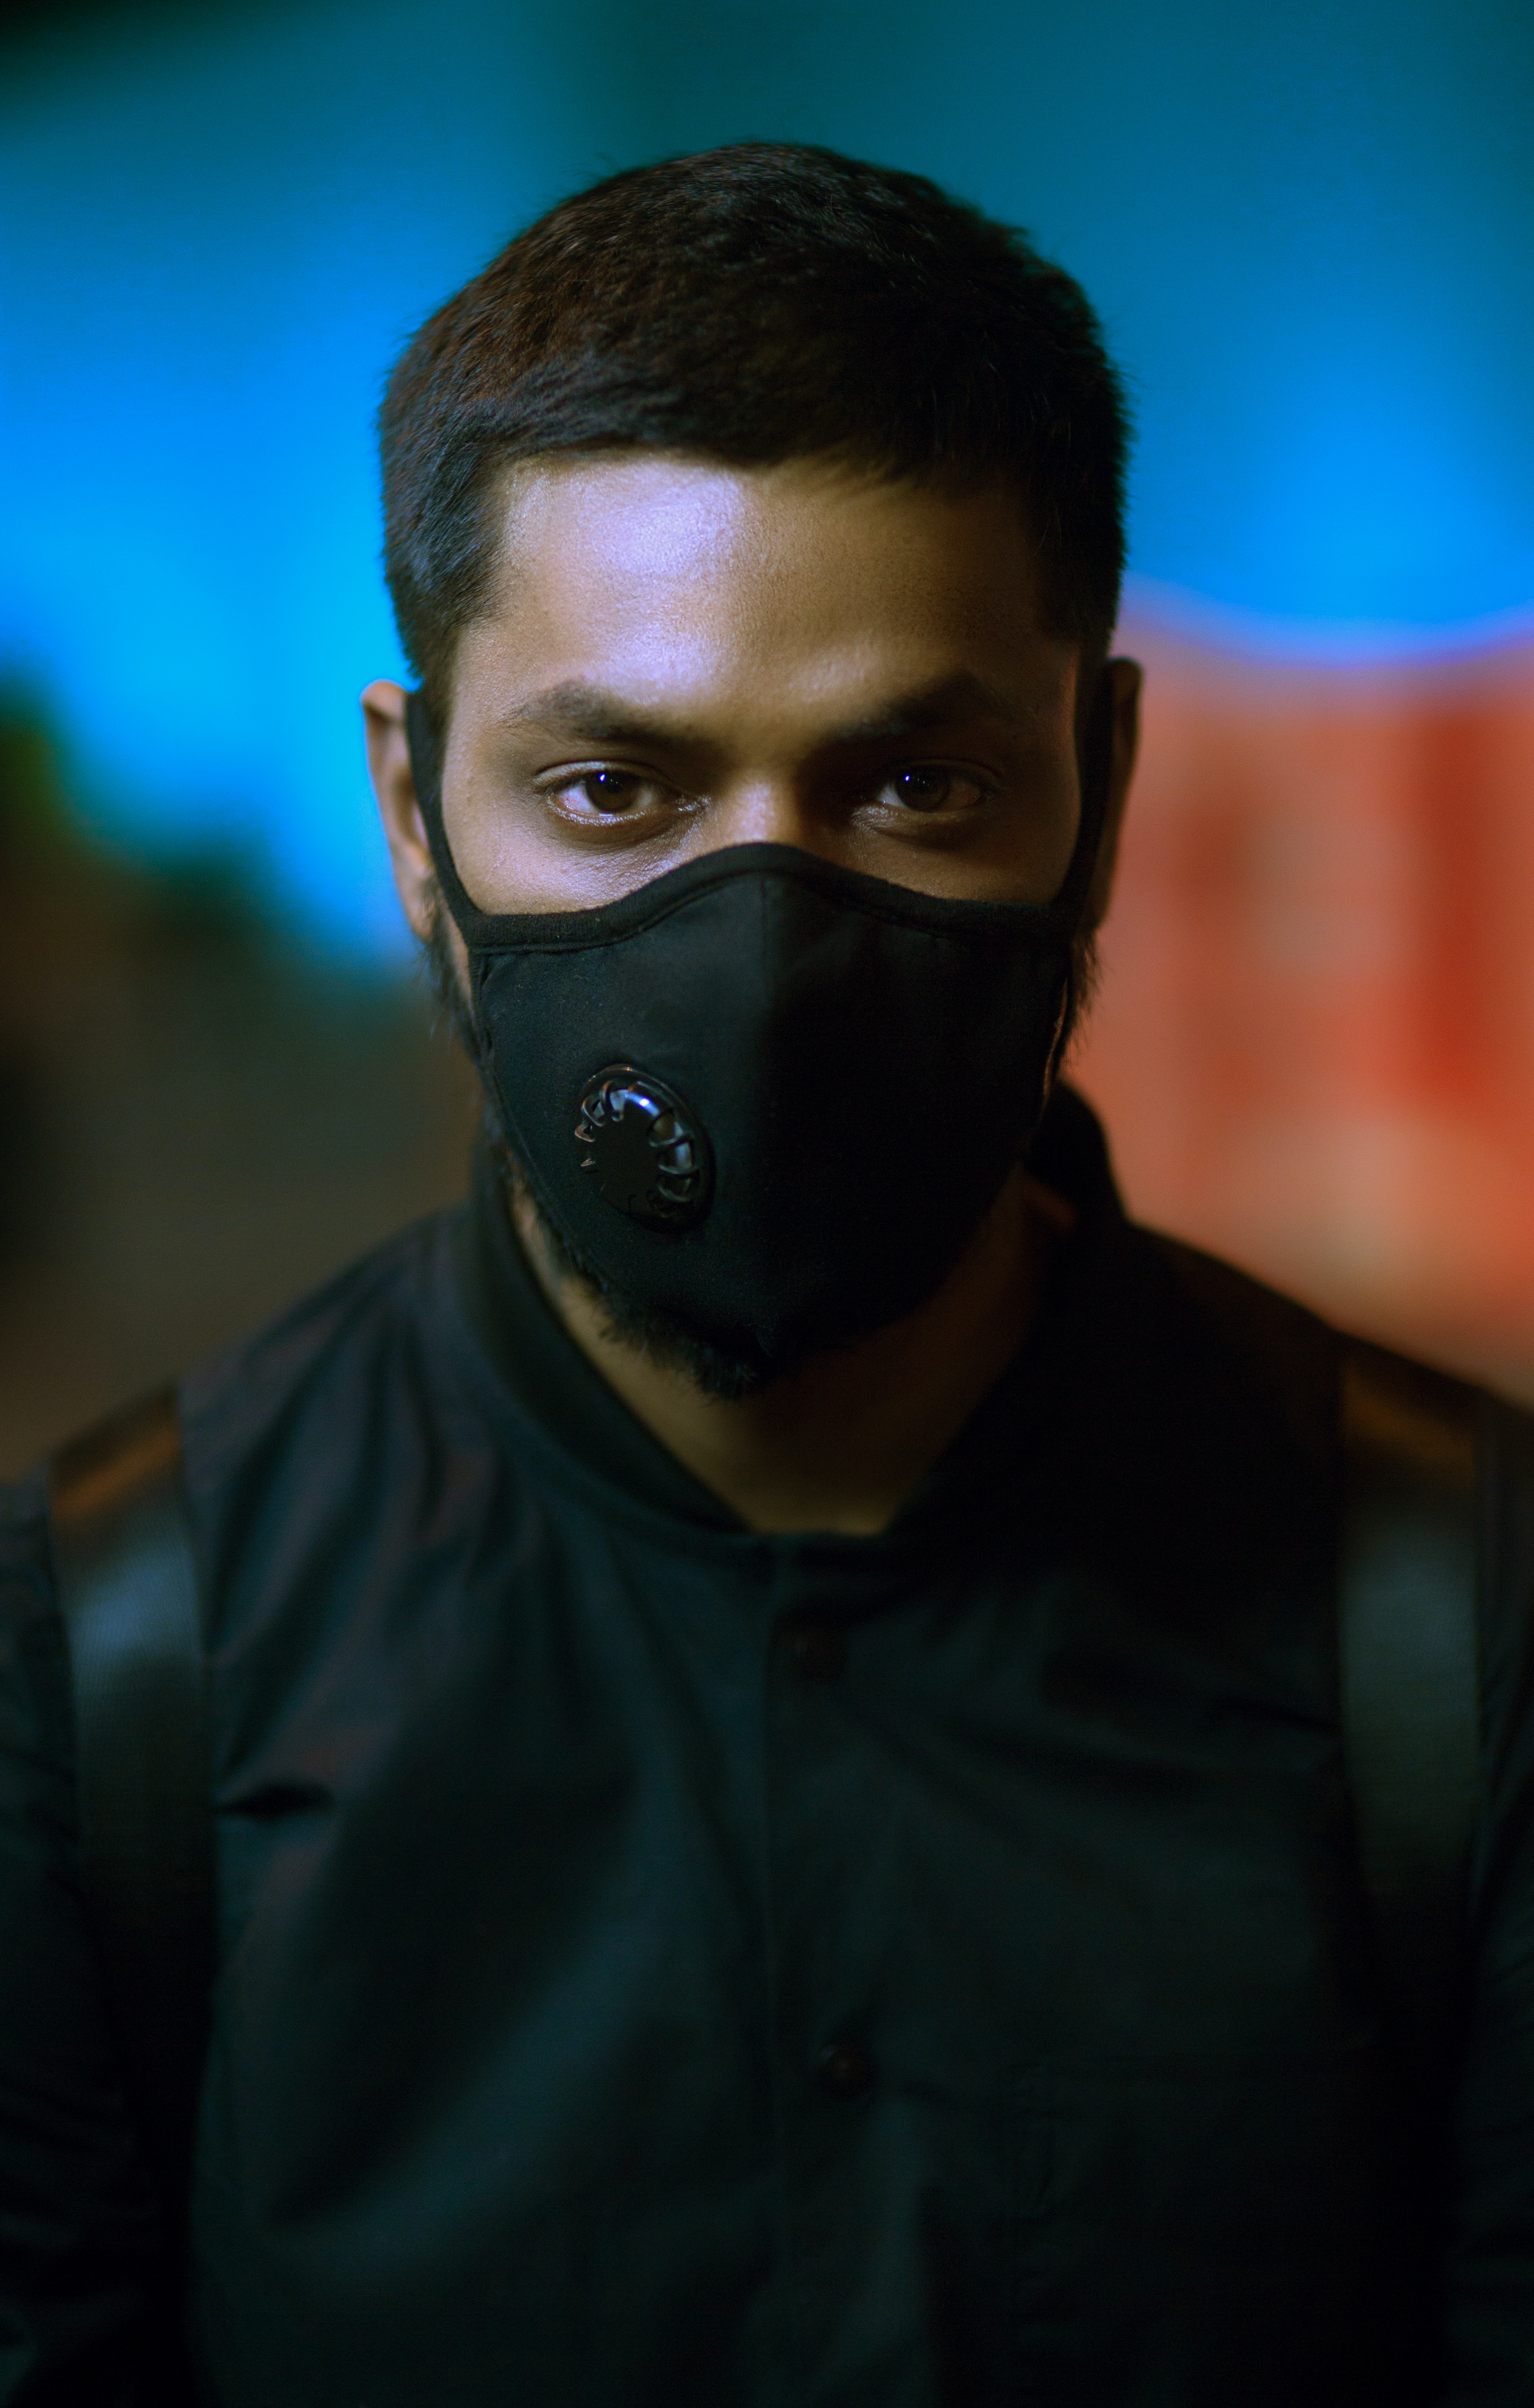 man wearing black mask